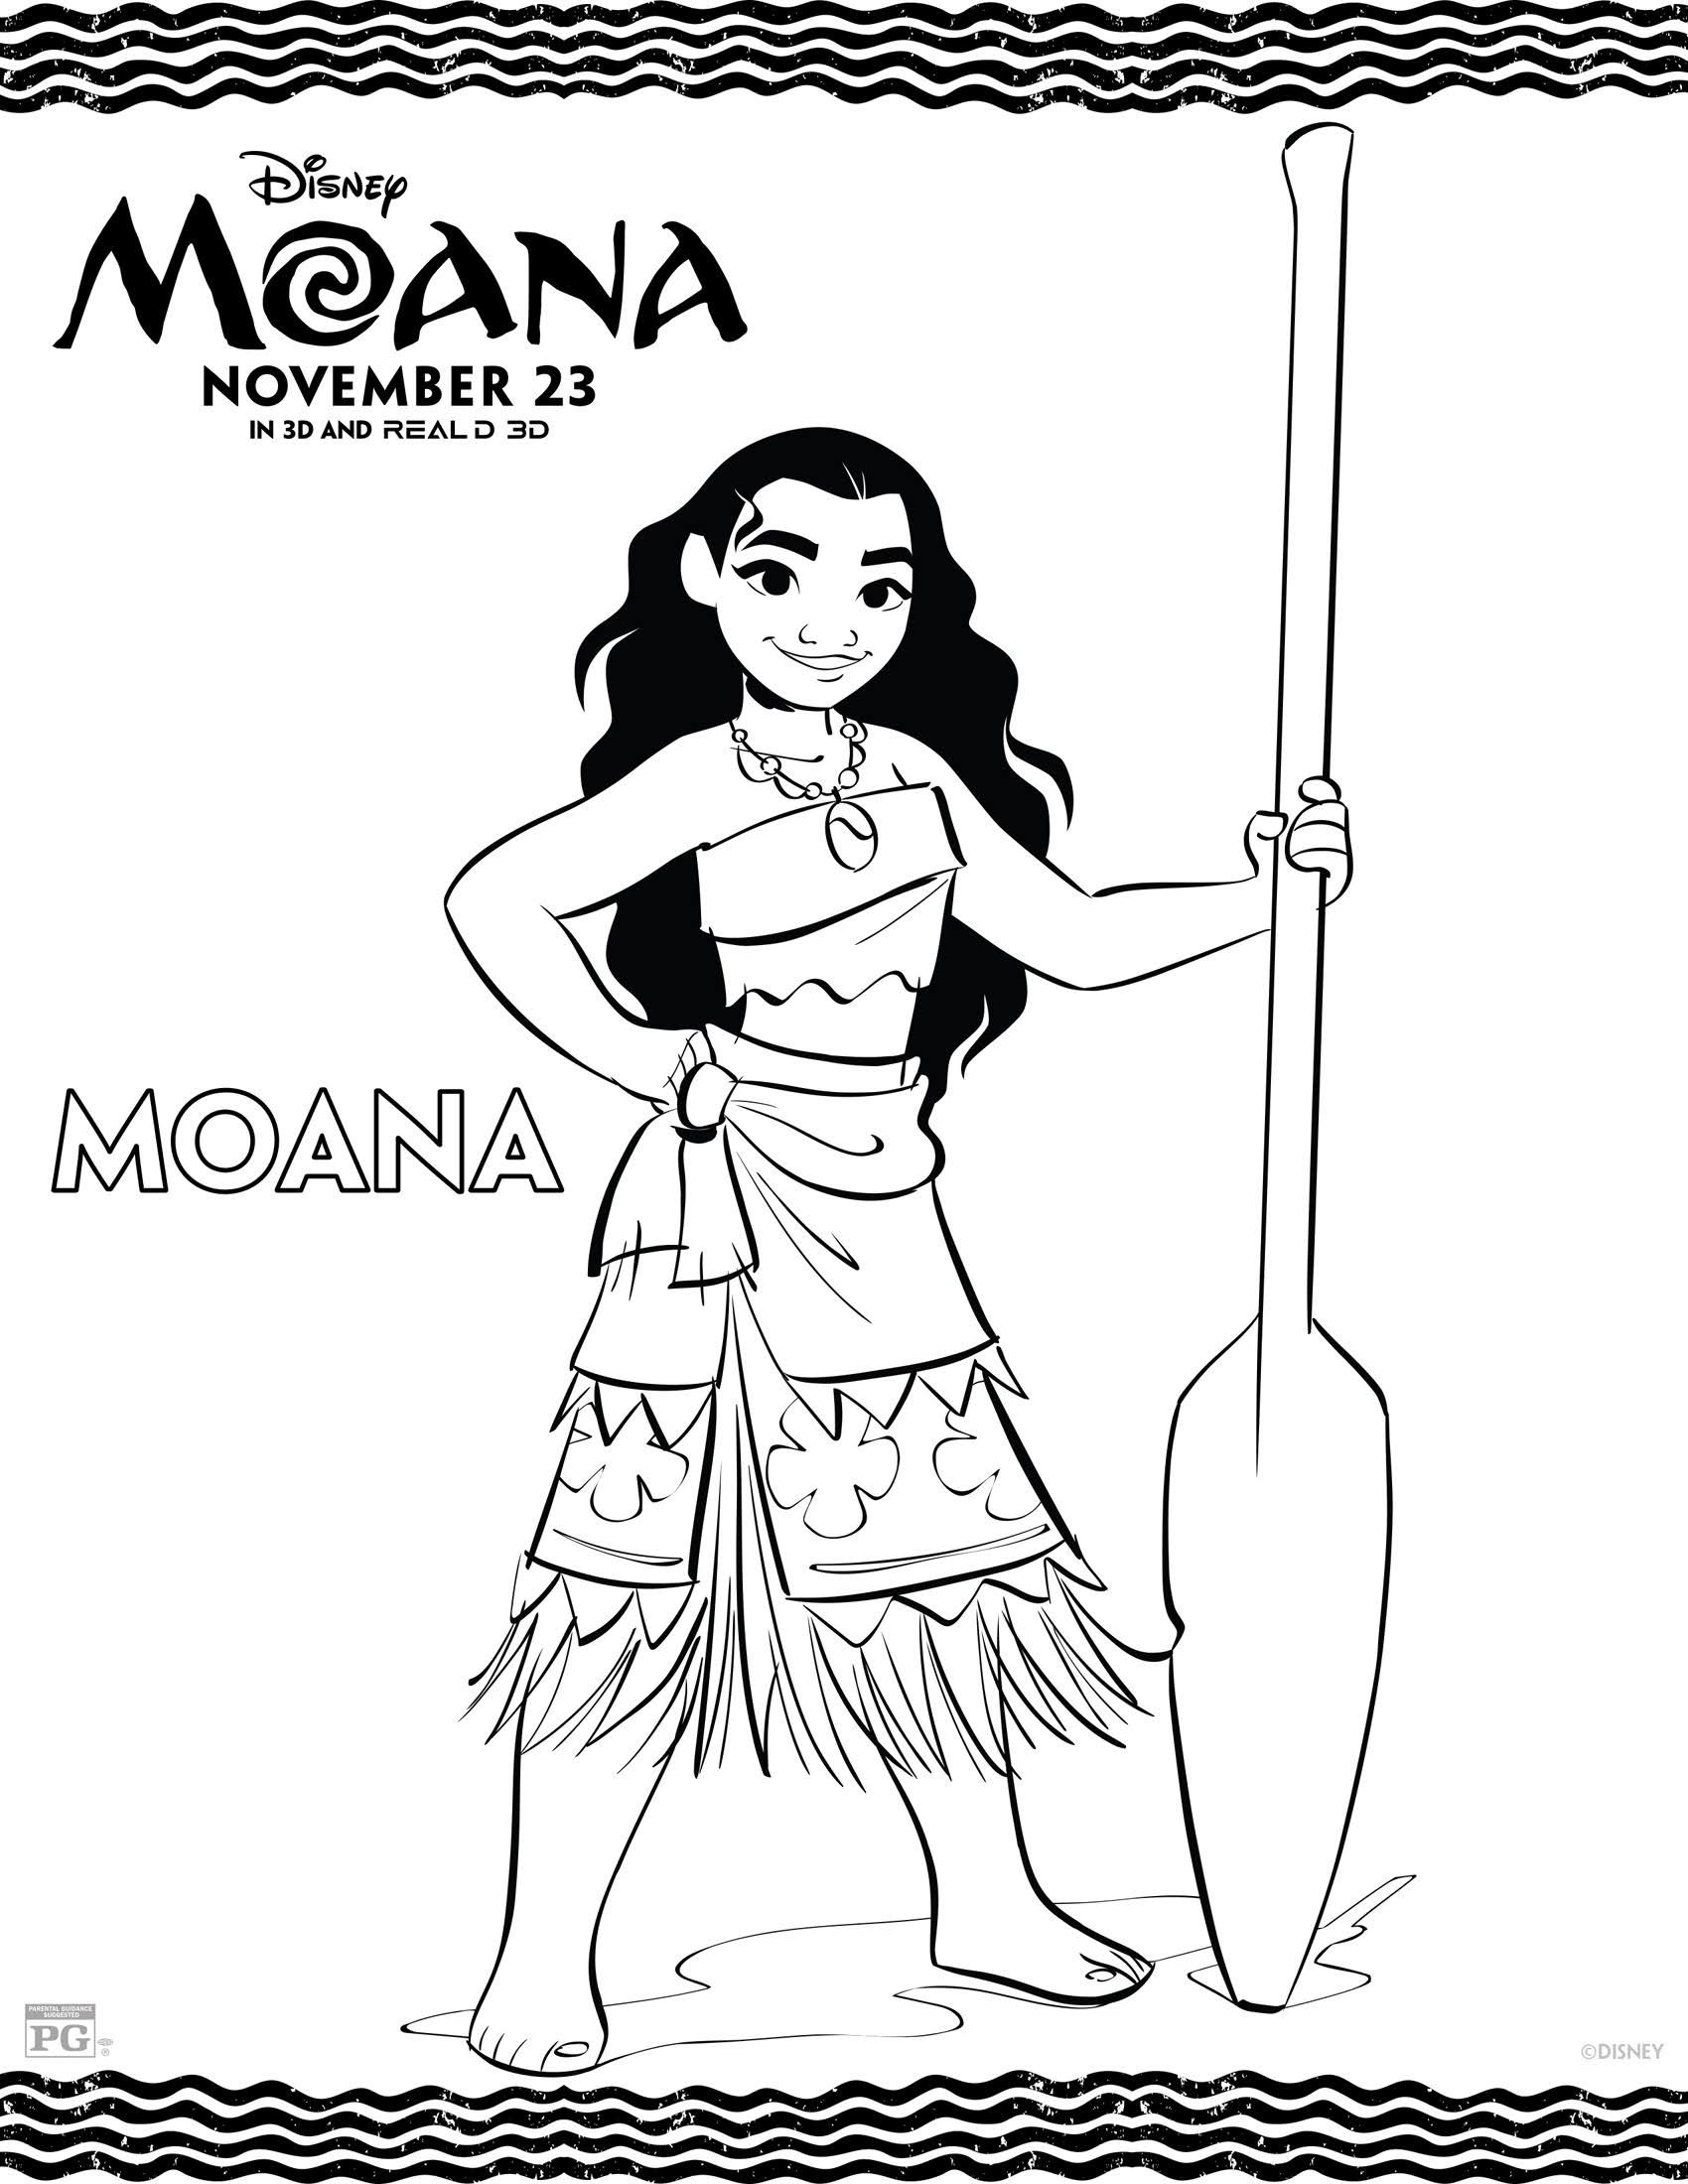 Disneys MOANA Movie Review And FREE Printable Coloring Pages